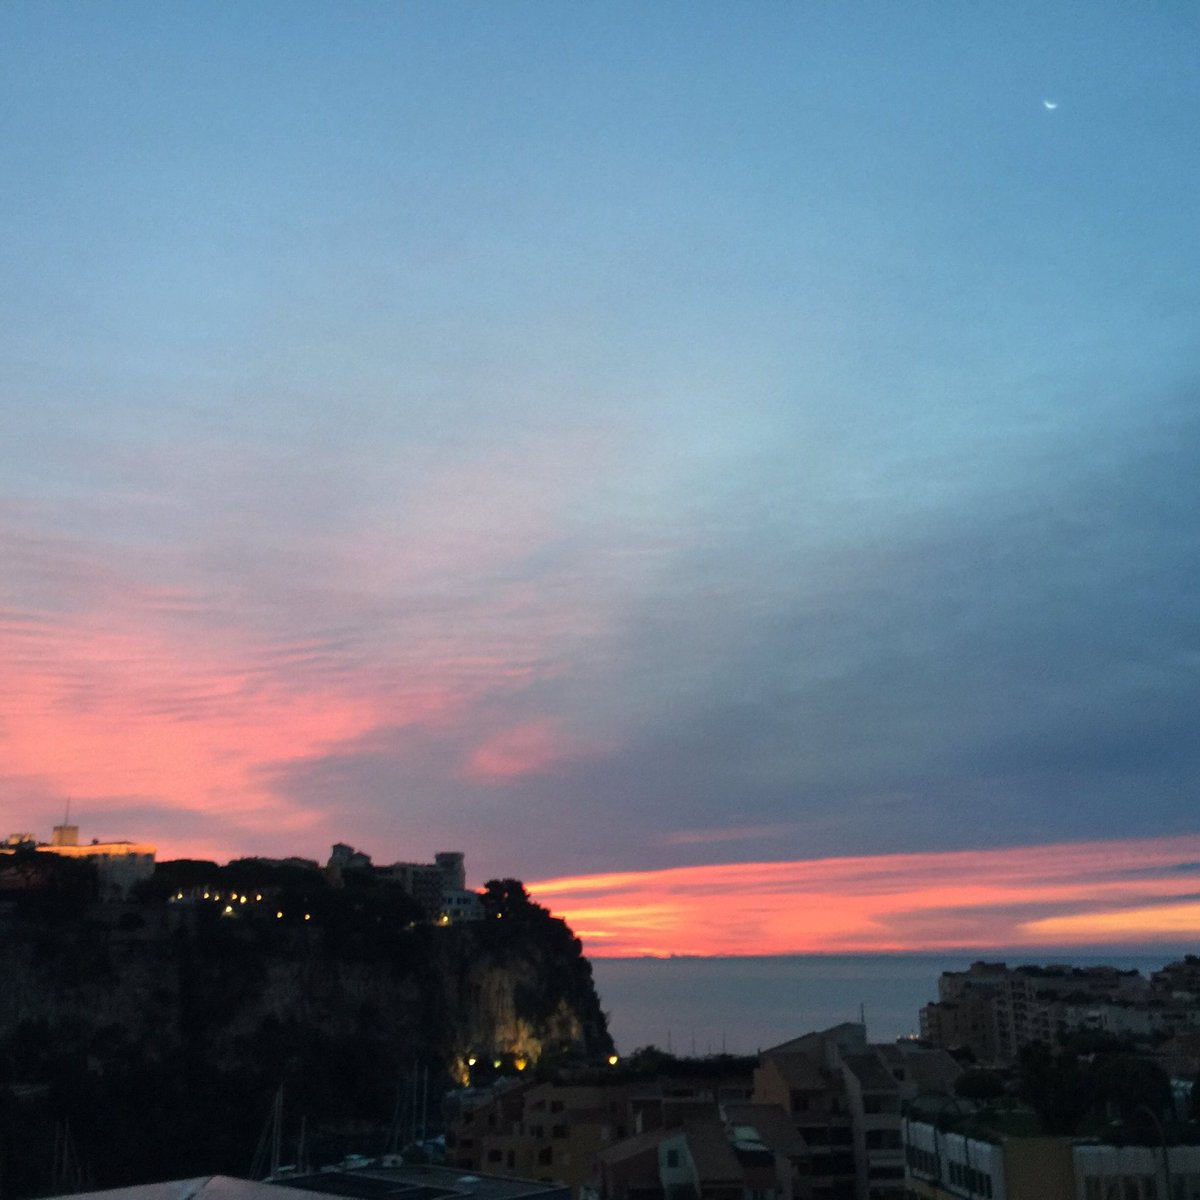 Good morning from #Monaco. The rising sun brings us 1 day closer to leaving on our 3 year journey around the . #monacoexplorations 31 days.<br>http://pic.twitter.com/i6uo2POLGQ